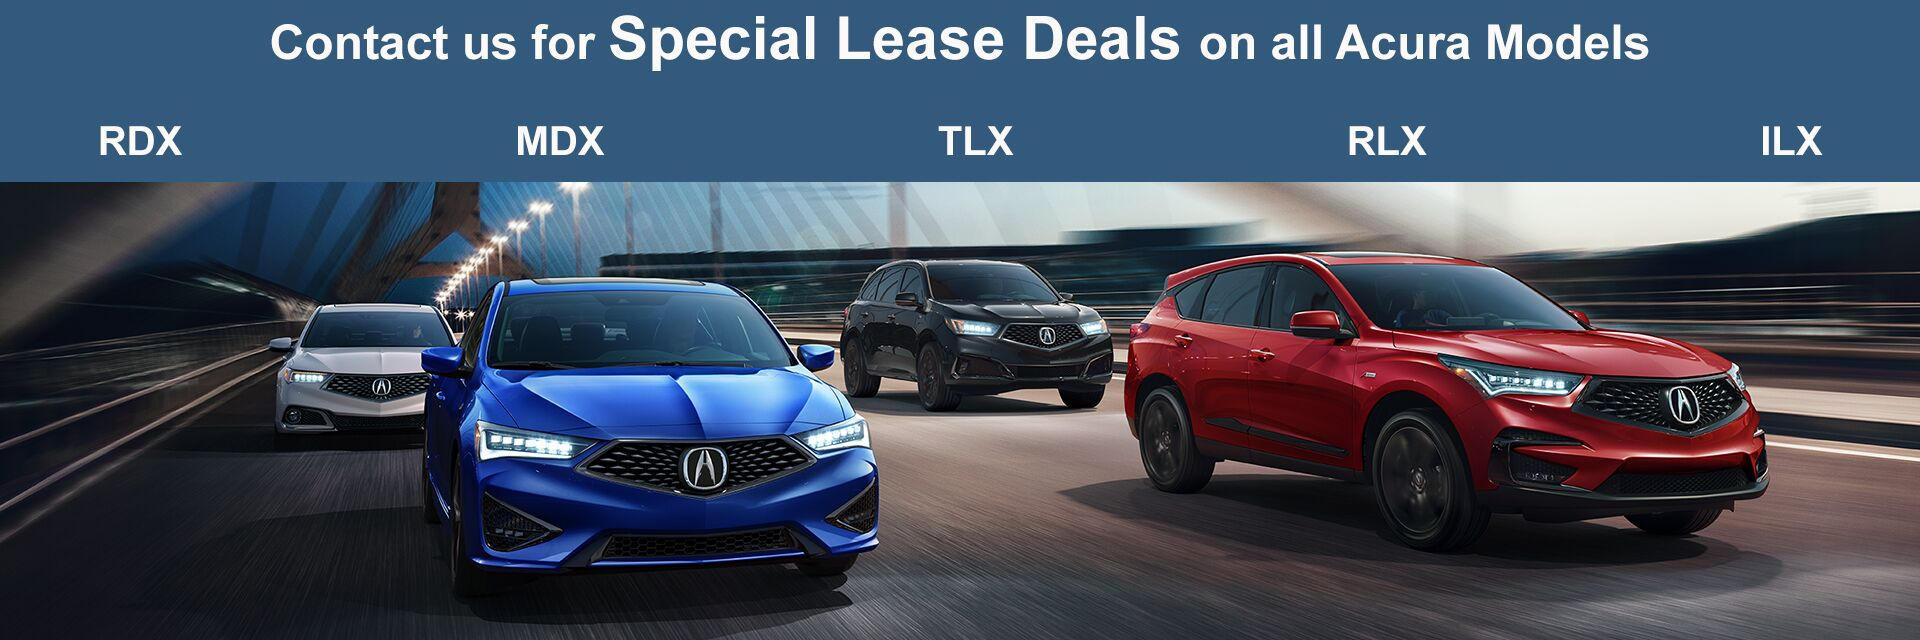 Special Lease Deals